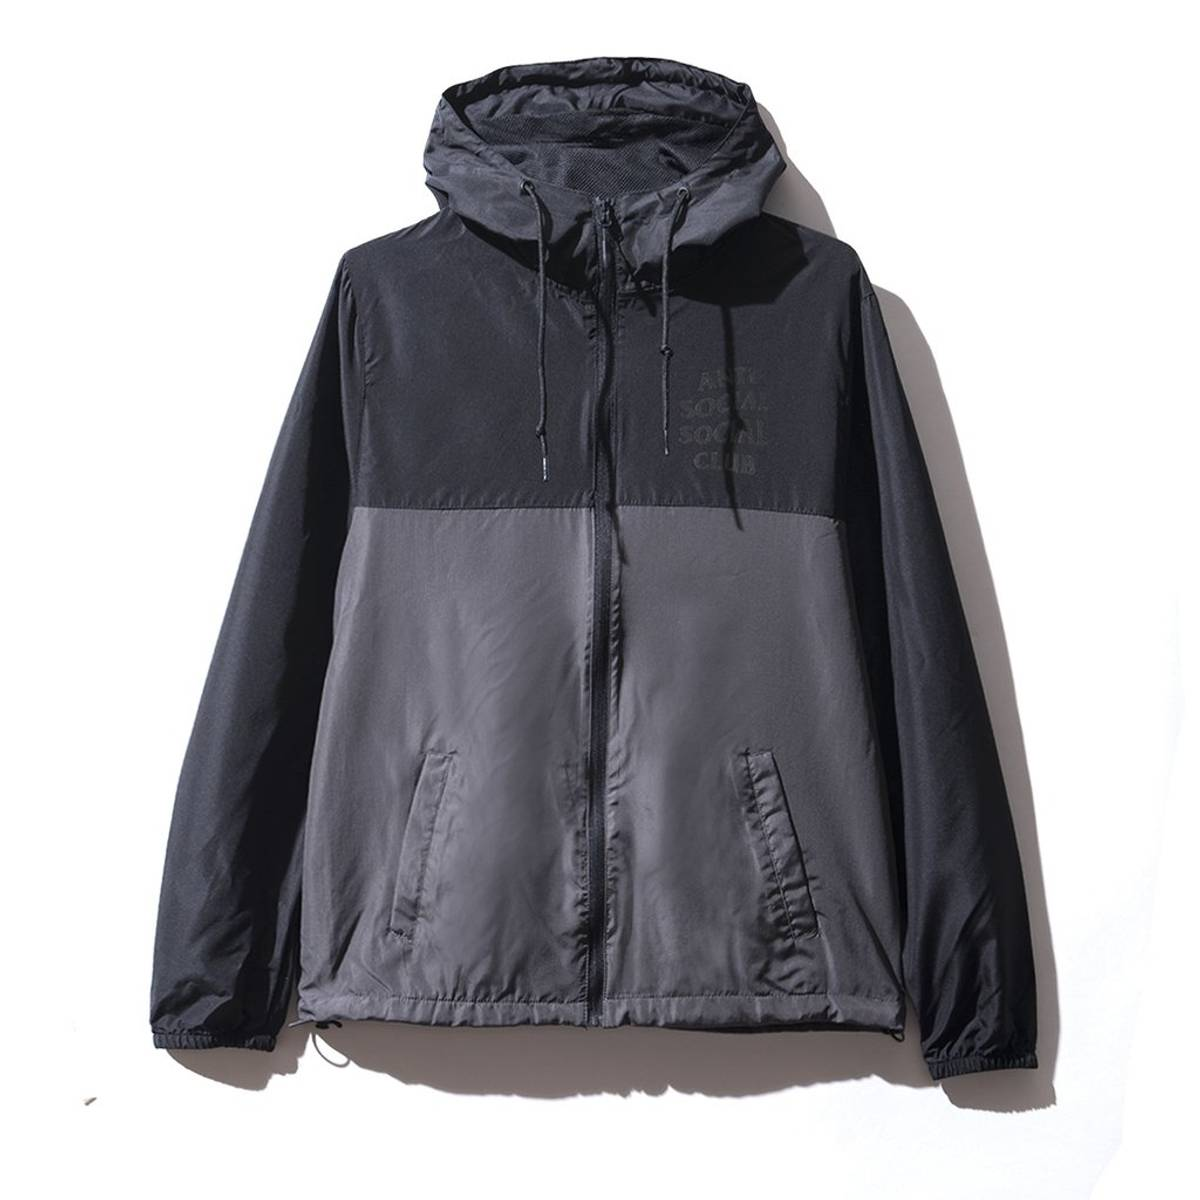 a8a0ab7ef215 Antisocial Social Club Reflective Jacket Sold For  90